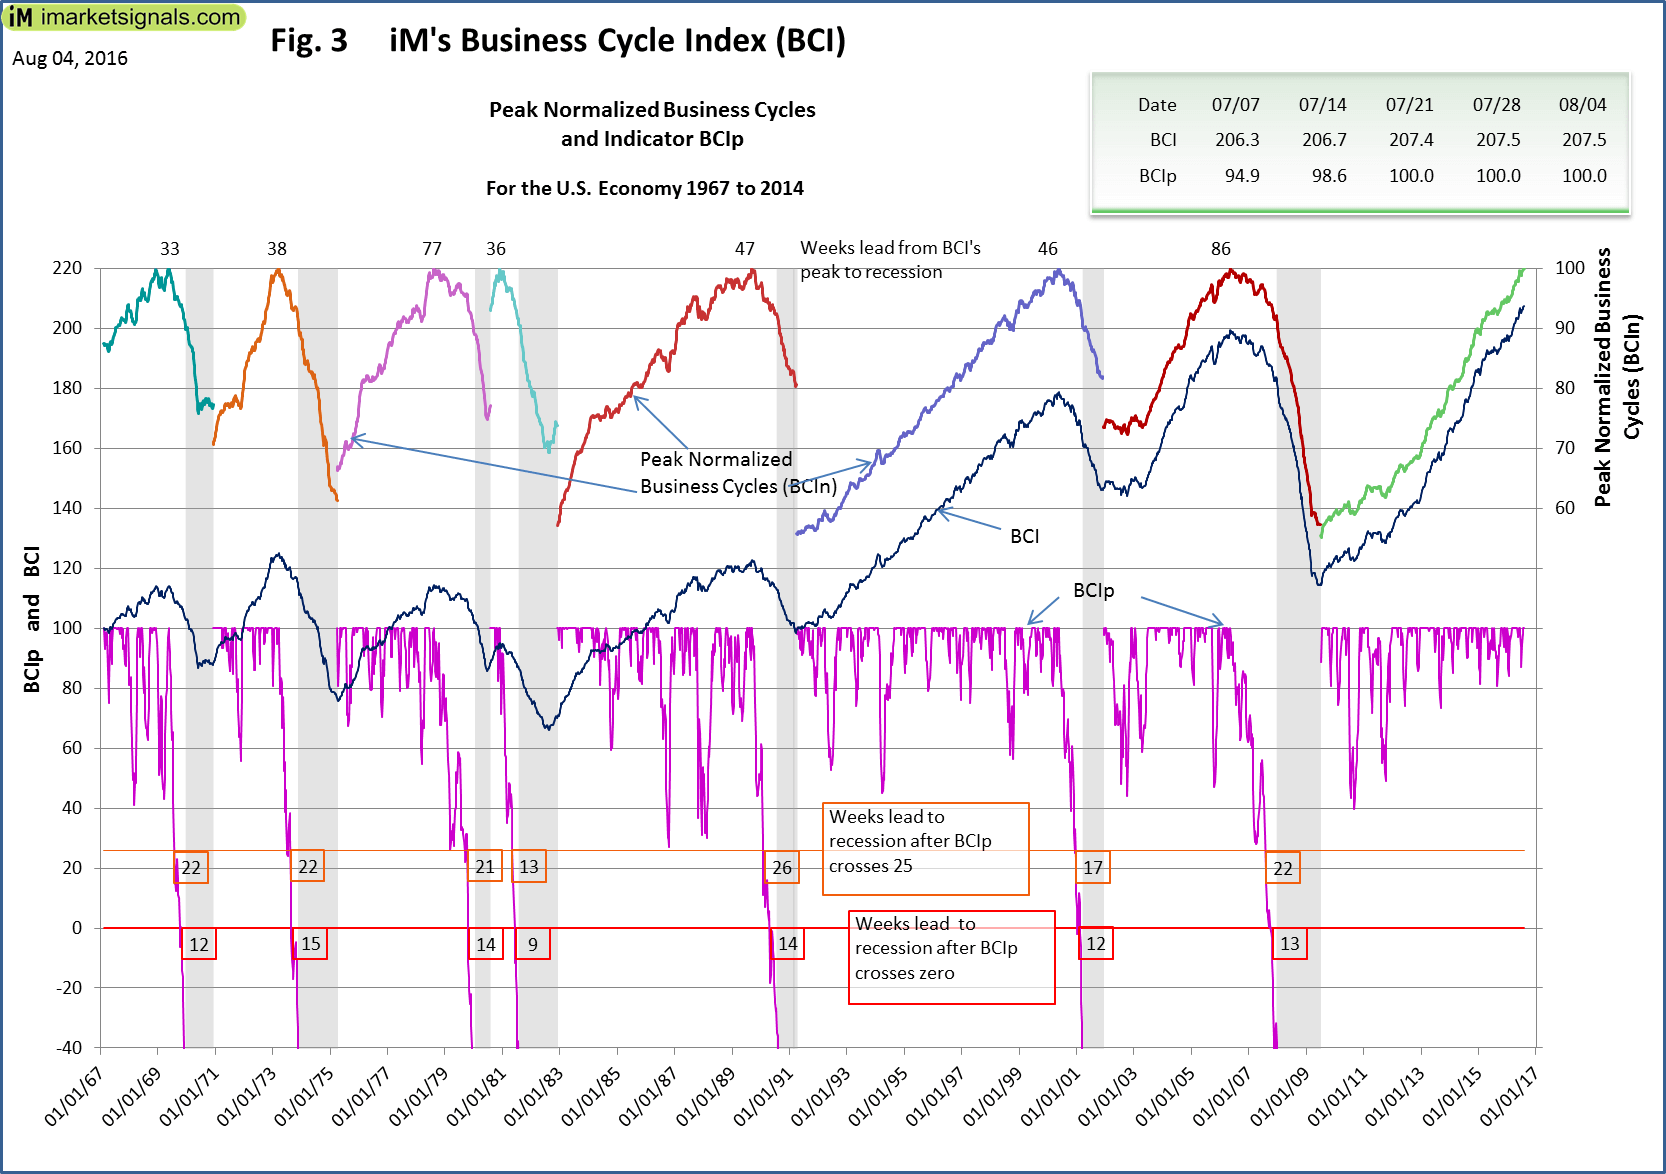 BCI-Fig-3-8-4-2016